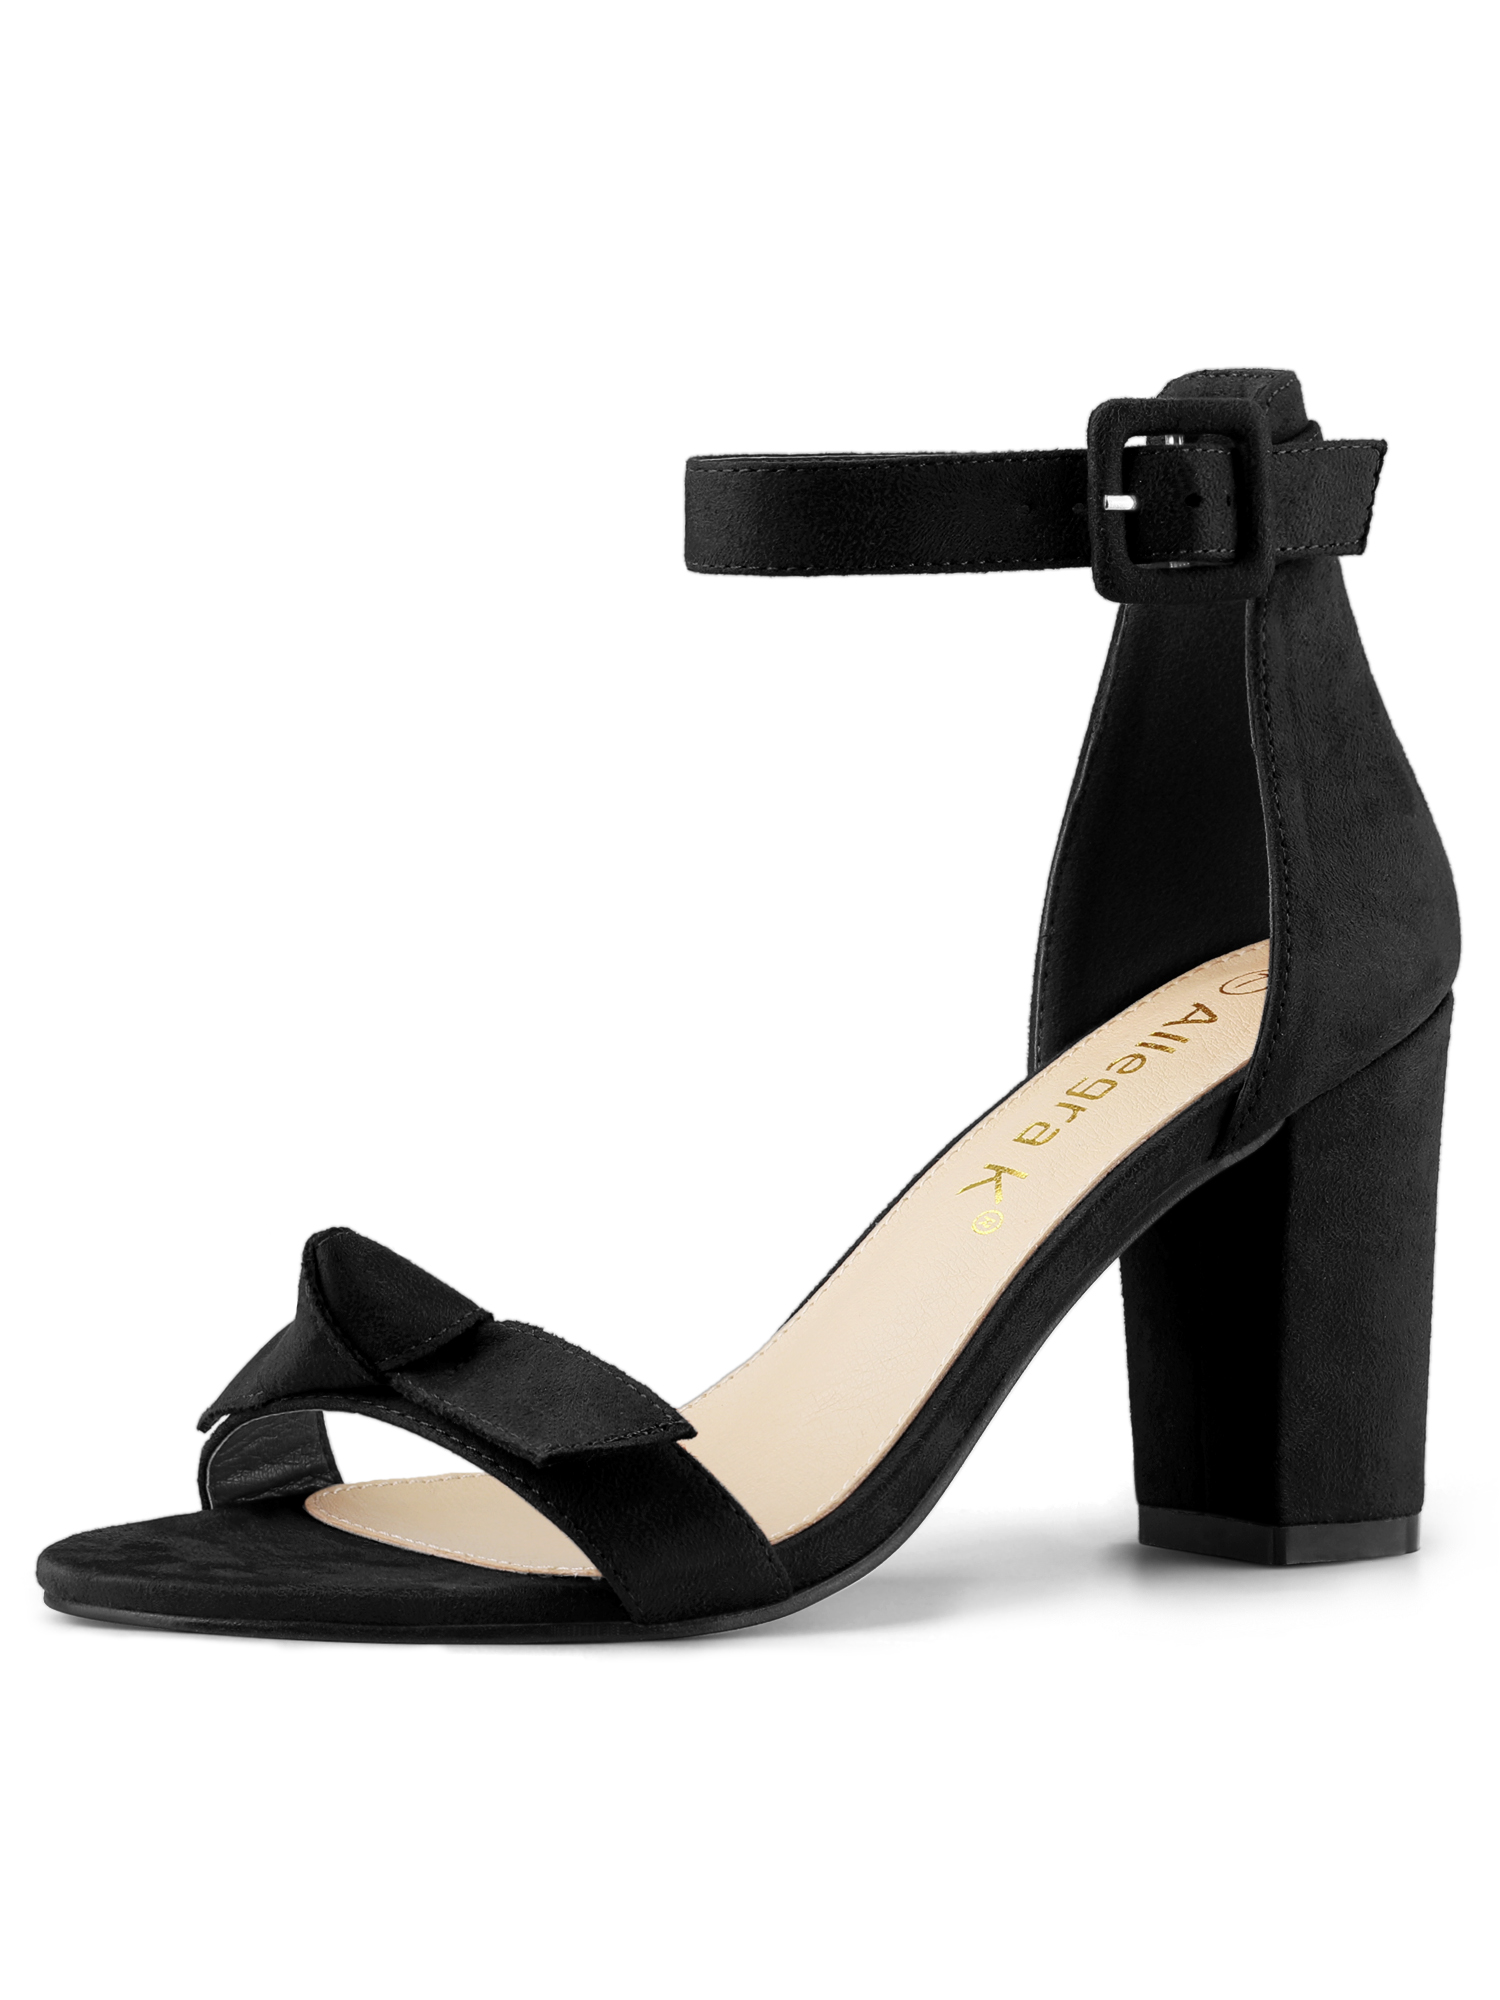 Women's Bow Chunky Heel Ankle Strap Open Toe Sandals Black US 7/UK 5/EU 37.5